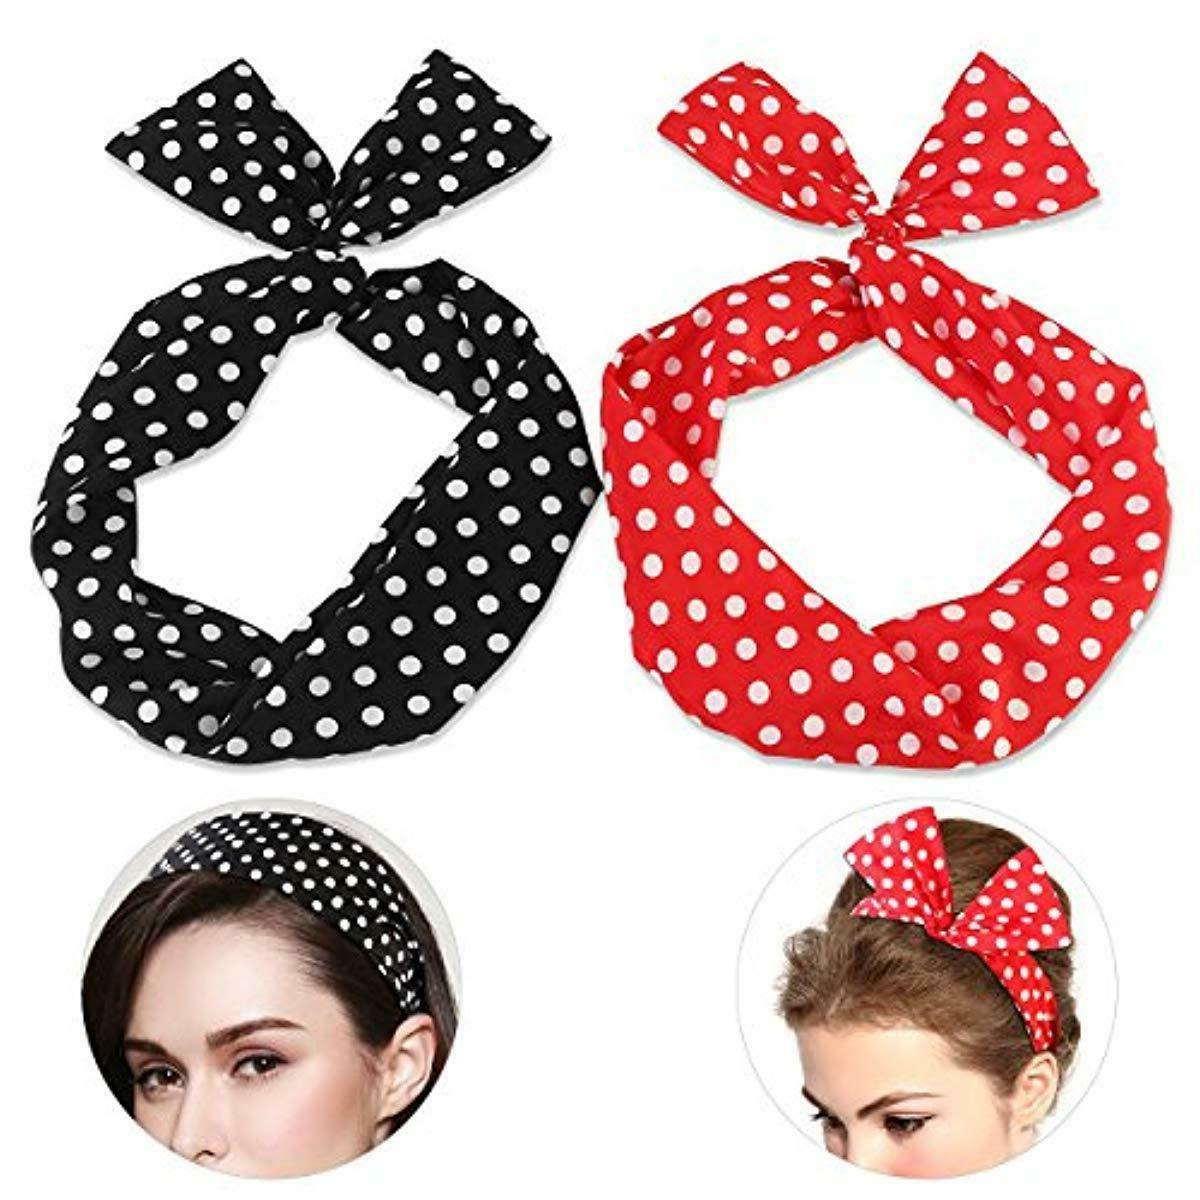 wire headband retro bowknot polka dot wire